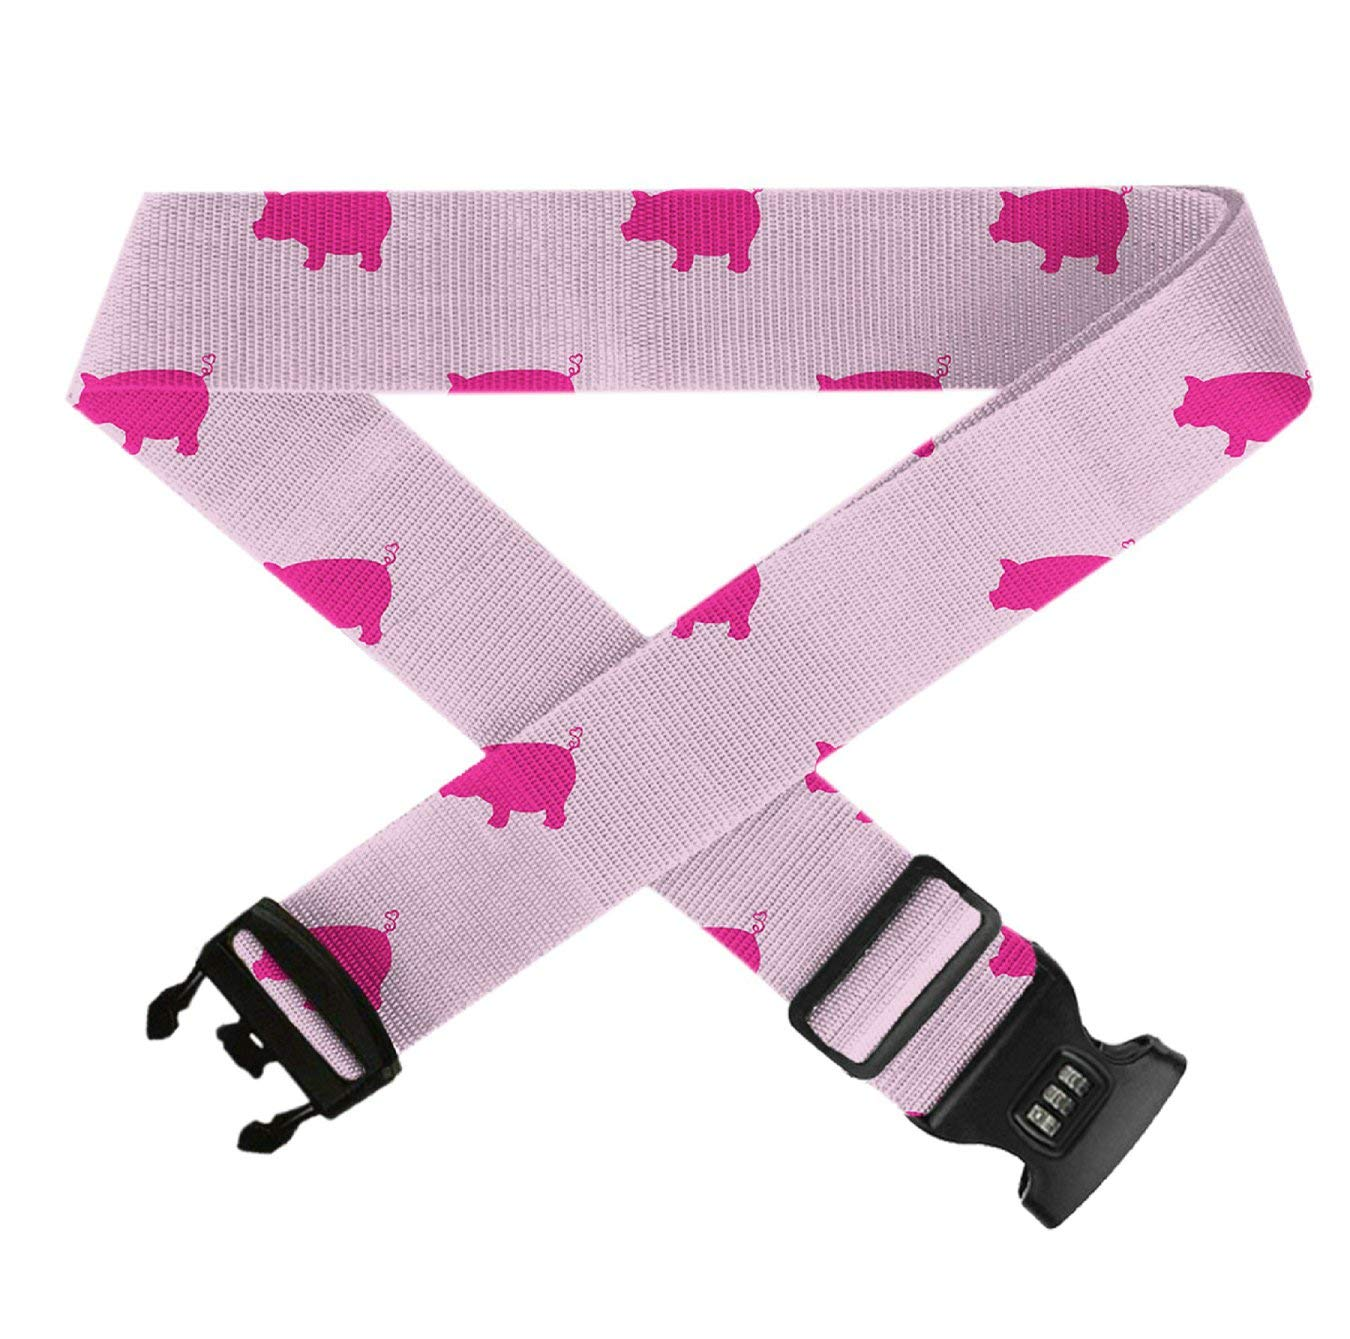 Heavy Duty Luggage Straps for Suitcase 20-32 Adjustable Travel Belt with TSA Lock 1 Pack GLORY ART Pink Pigs Pattern